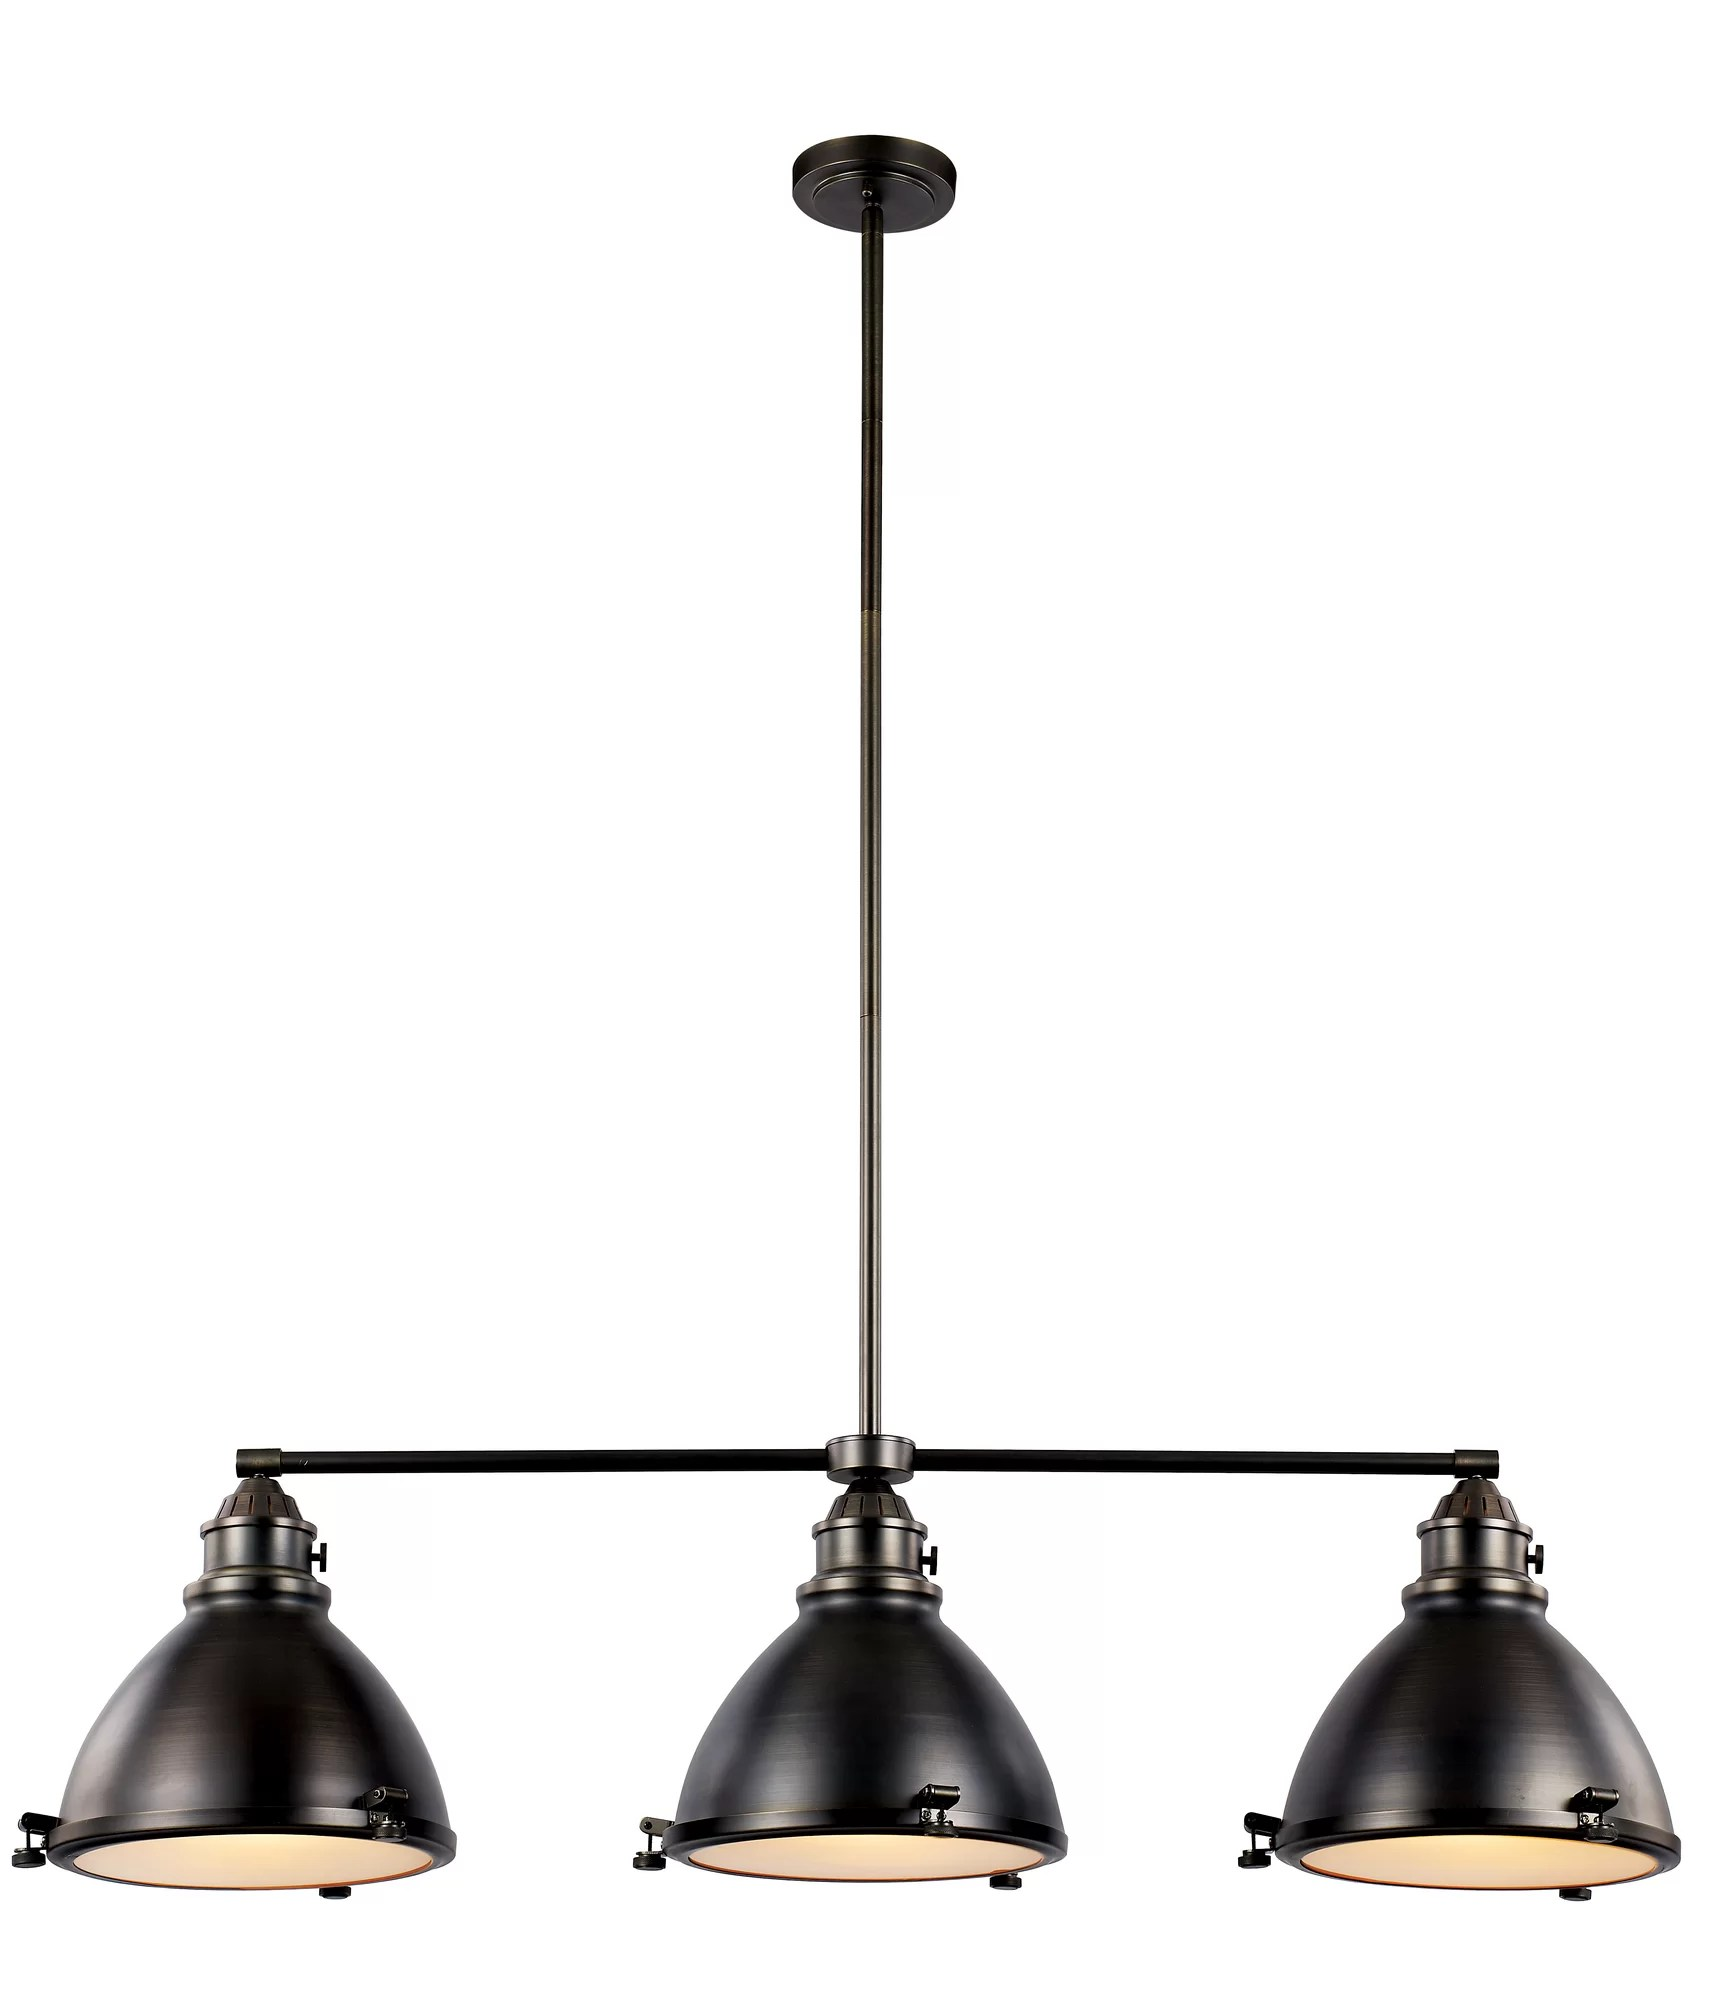 Pendant Island Lights Transglobe Lighting Vintage 3 Light Kitchen Island Pendant